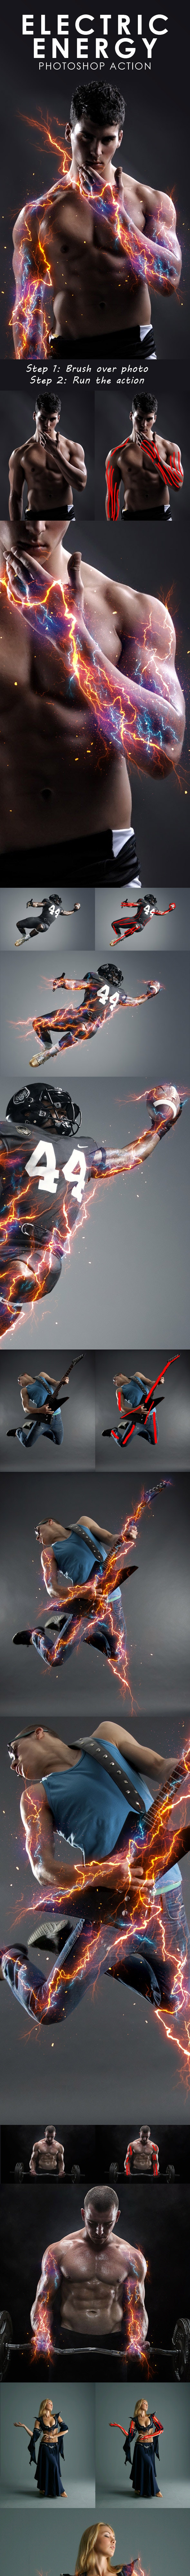 Electric Energy Photoshop Action - Photo Effects Actions